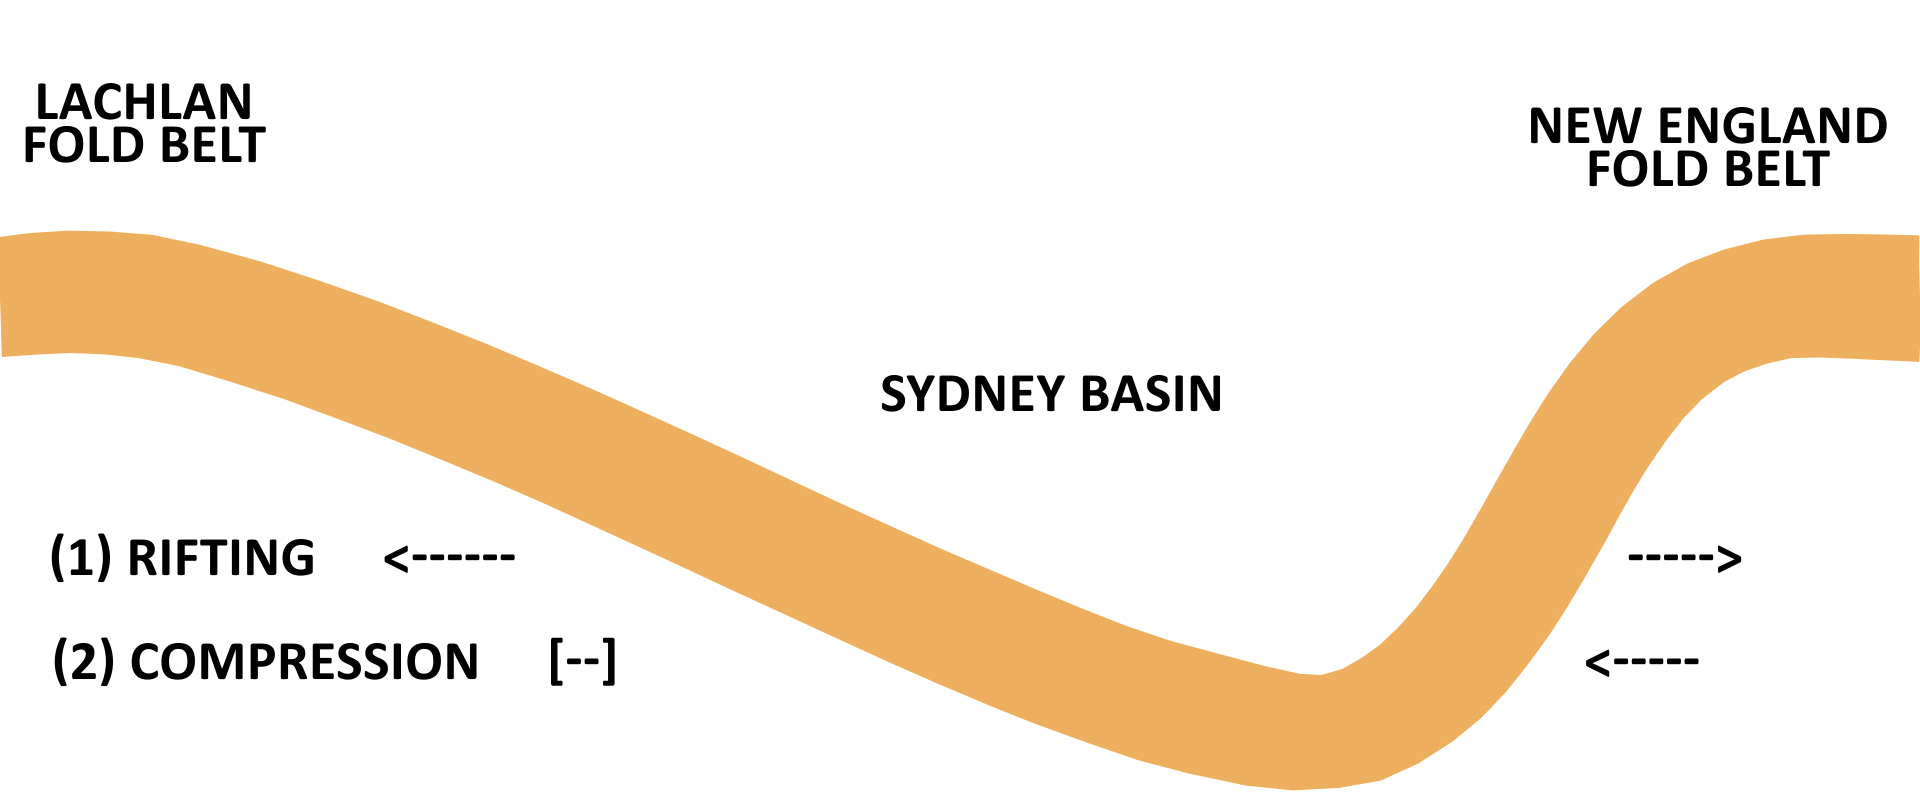 Sydney Basin Rifting or Compression